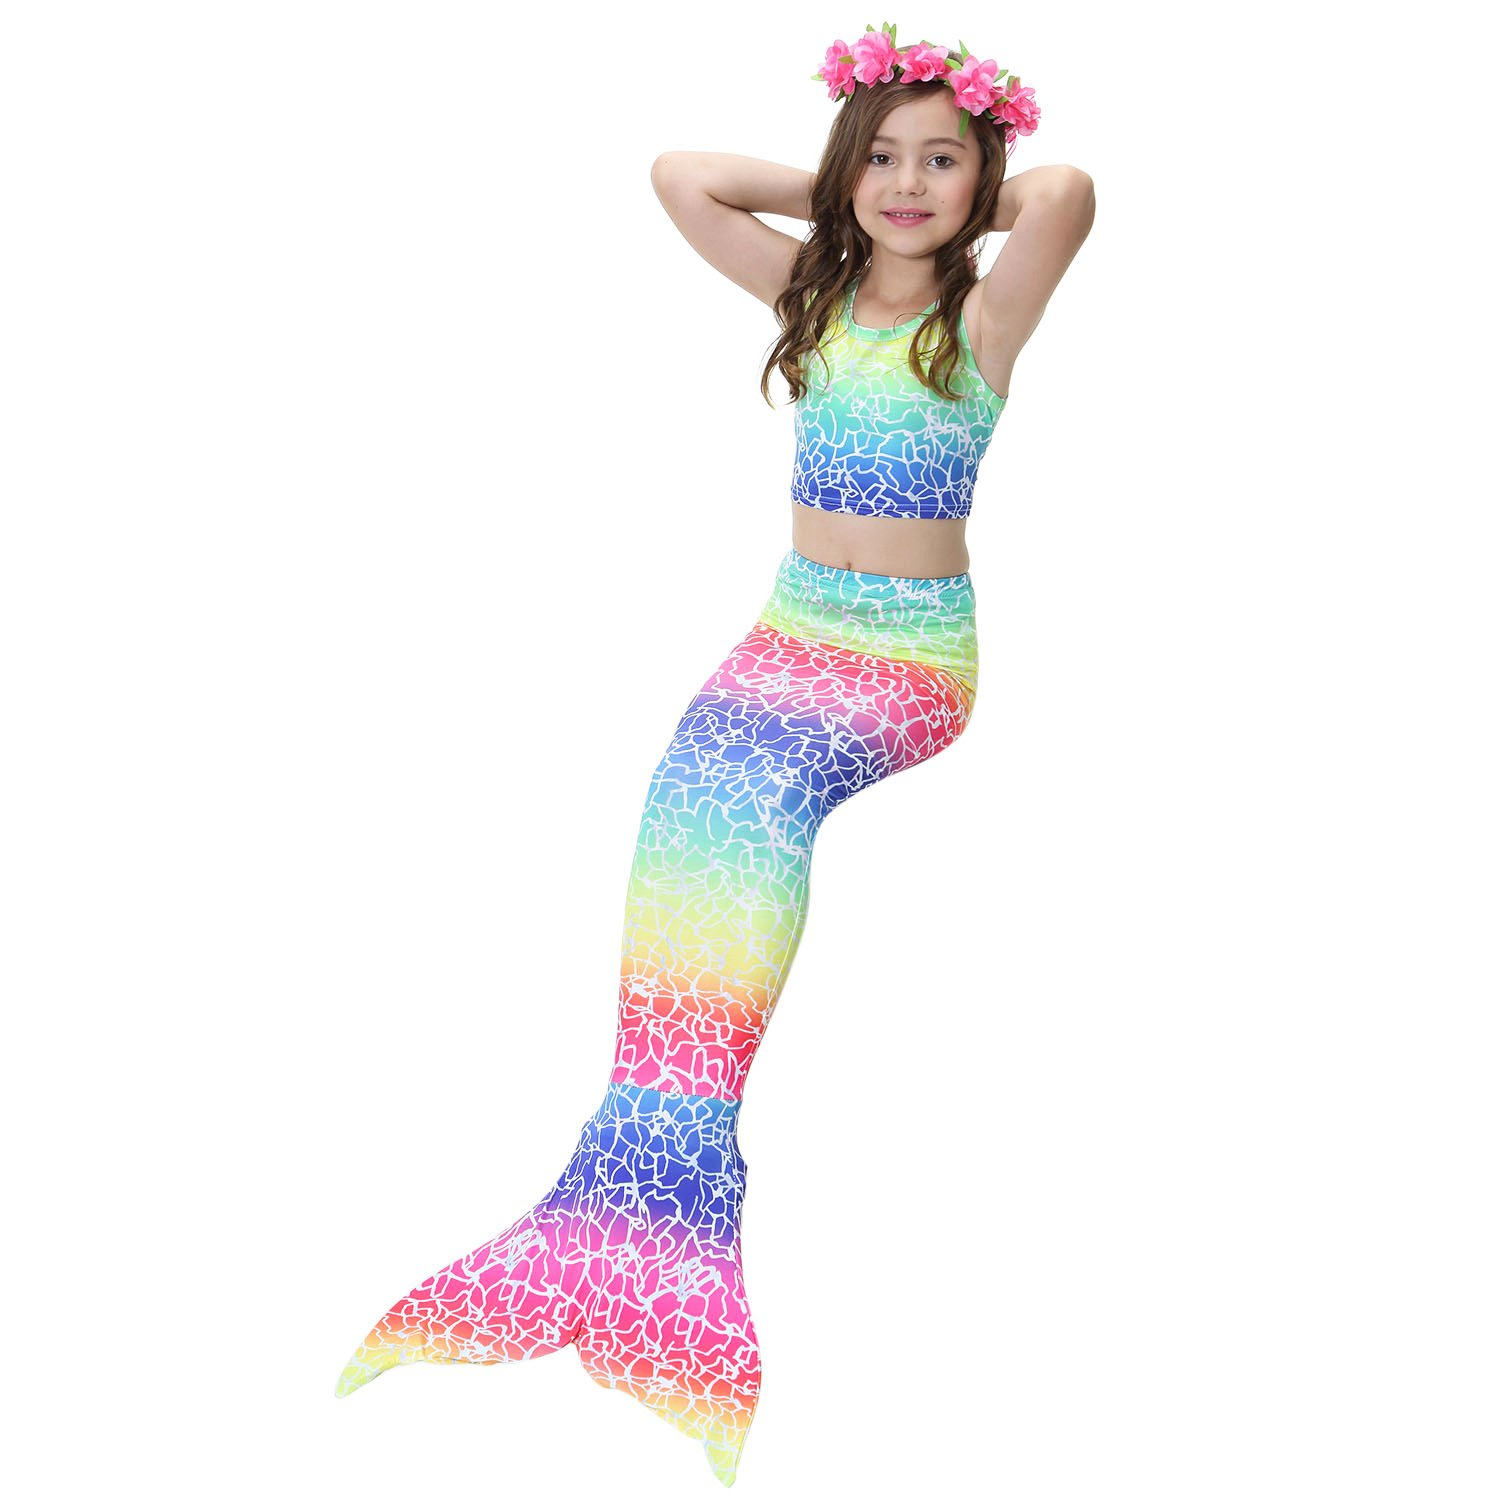 AUIE SAOSA Girl mermaid tail for swimming and fins swimwear cover up sets 4PC